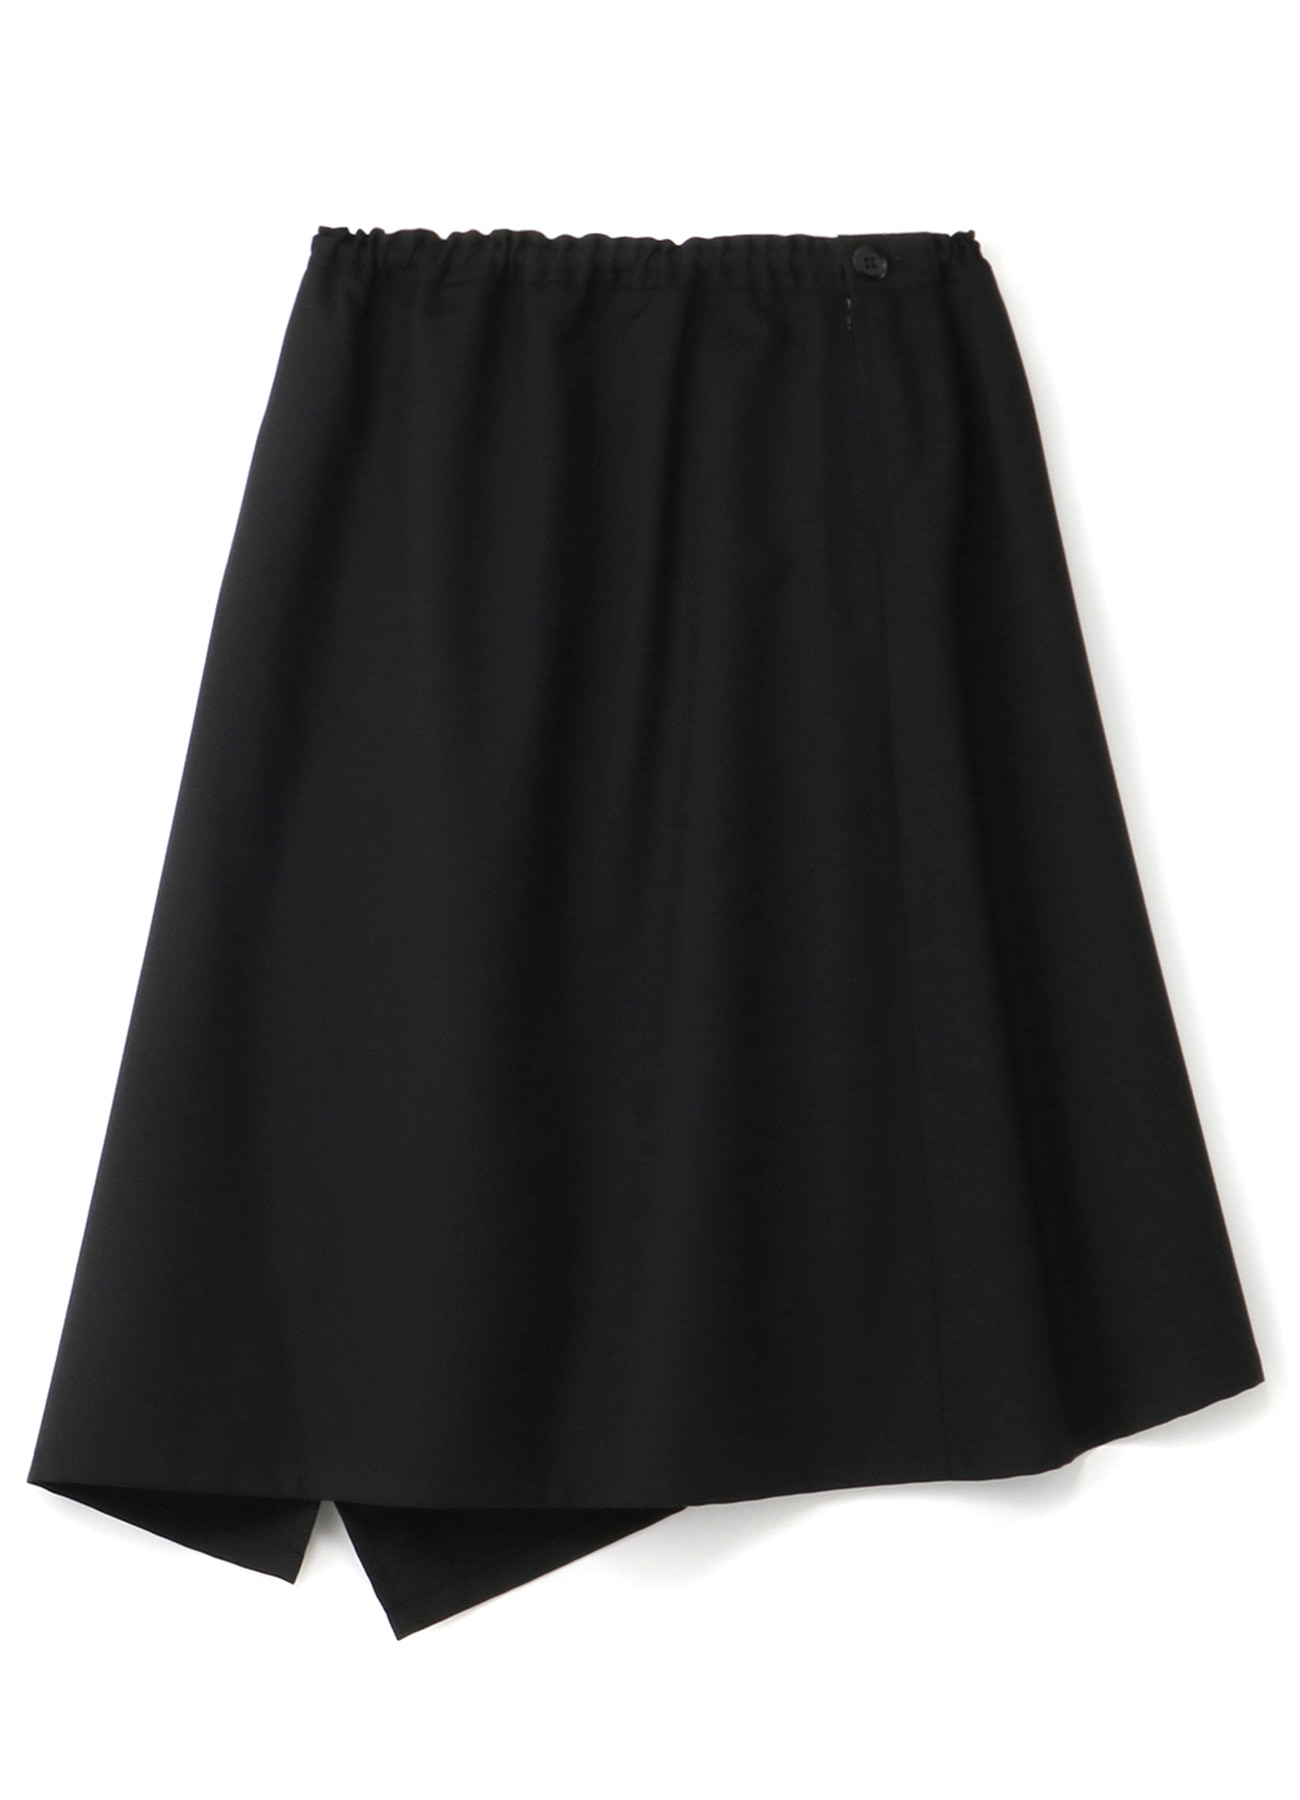 T/W_ gaberdine Left-Handed Gathered Skirt